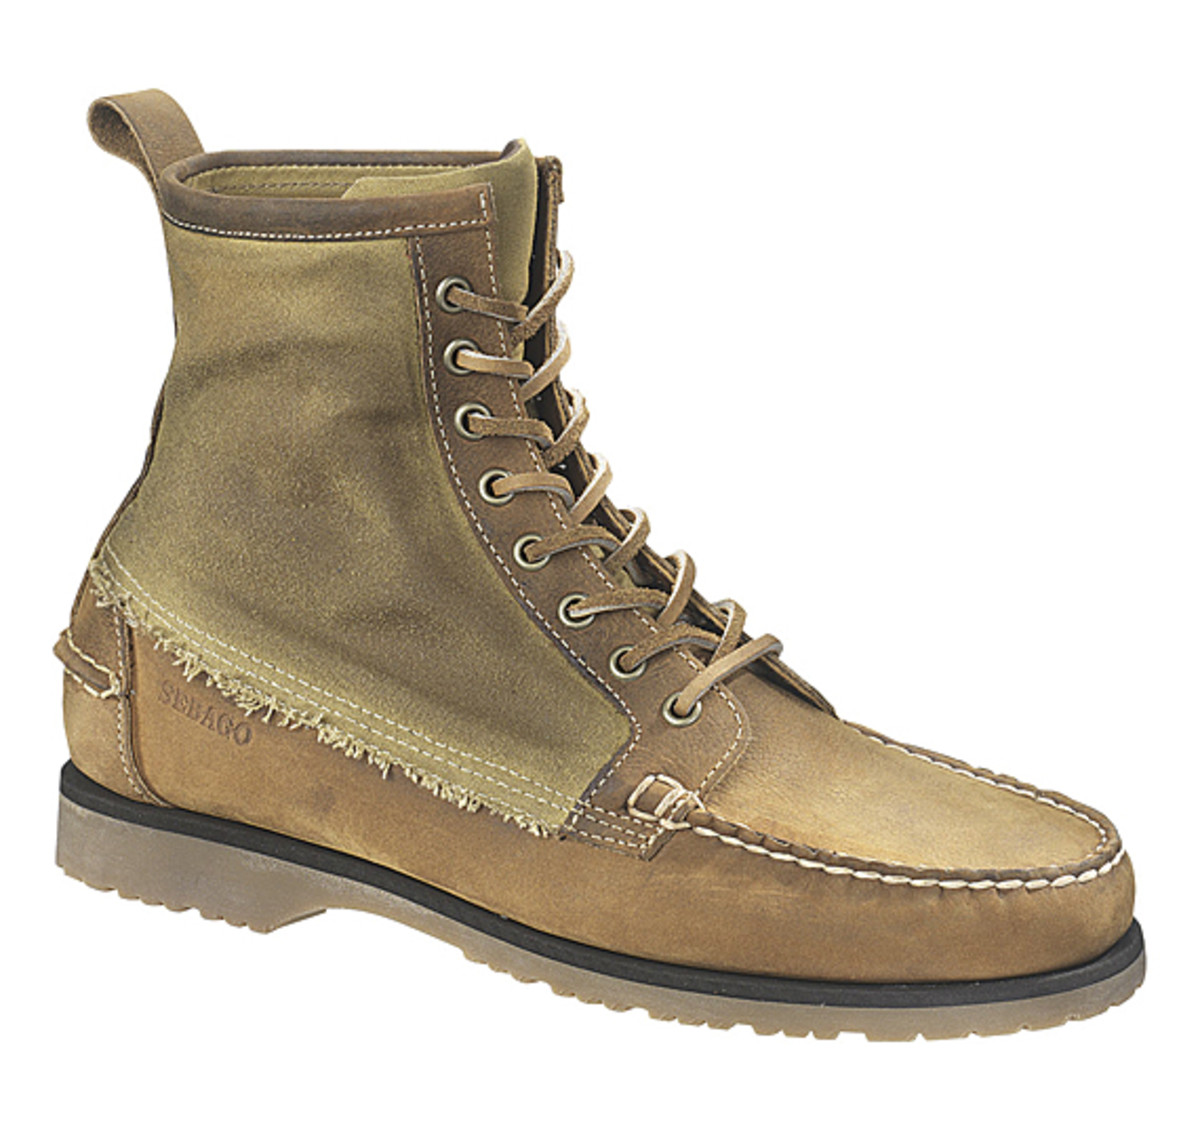 filson-sebago-capsule-collection-kettle-boots-01